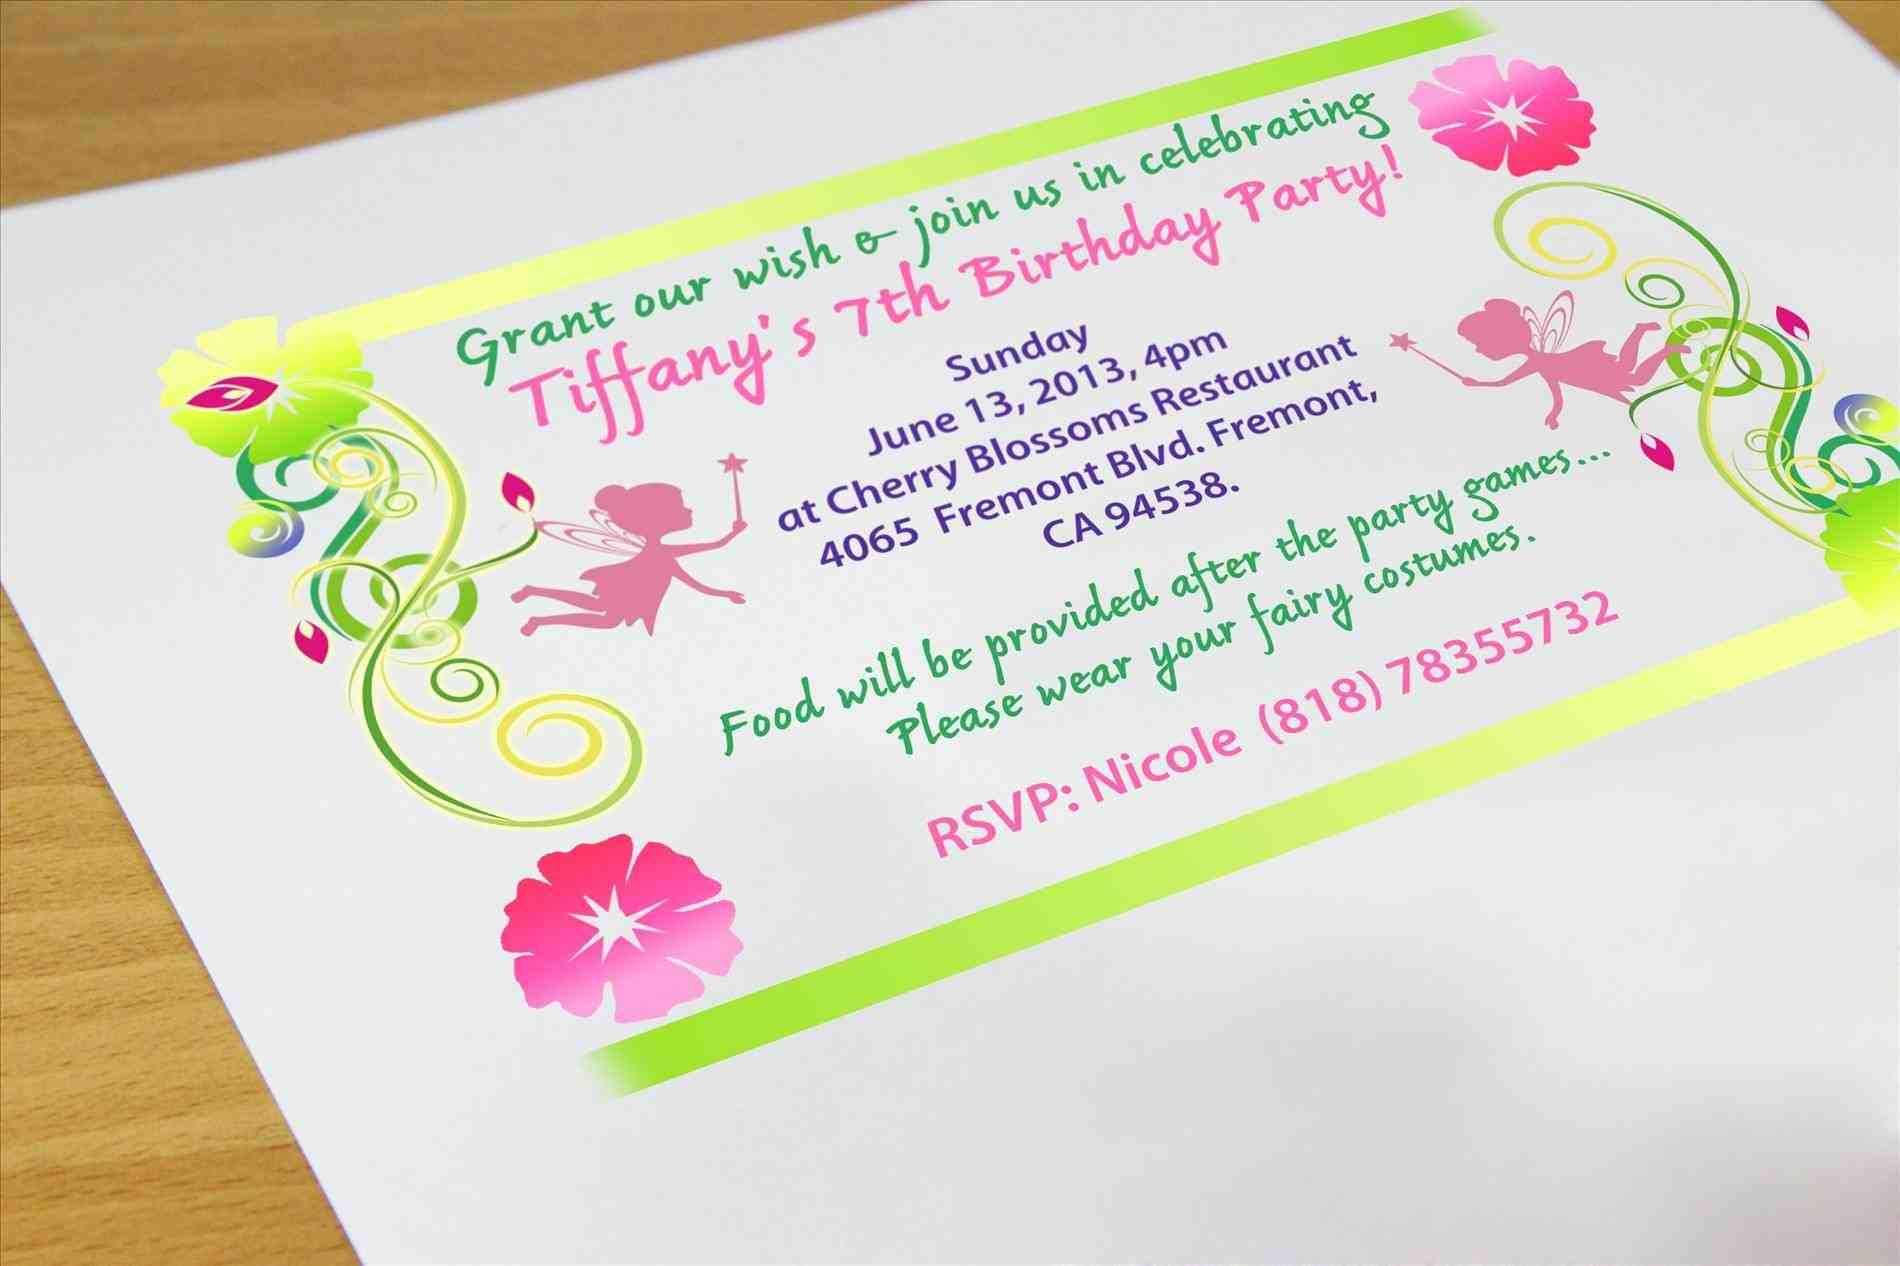 Feminine Luncheon Birthday Invitation Wording Birthday Ideas Lunch My Da Create Birthday Invitations Birthday Invitation Card Online Make Birthday Invitations